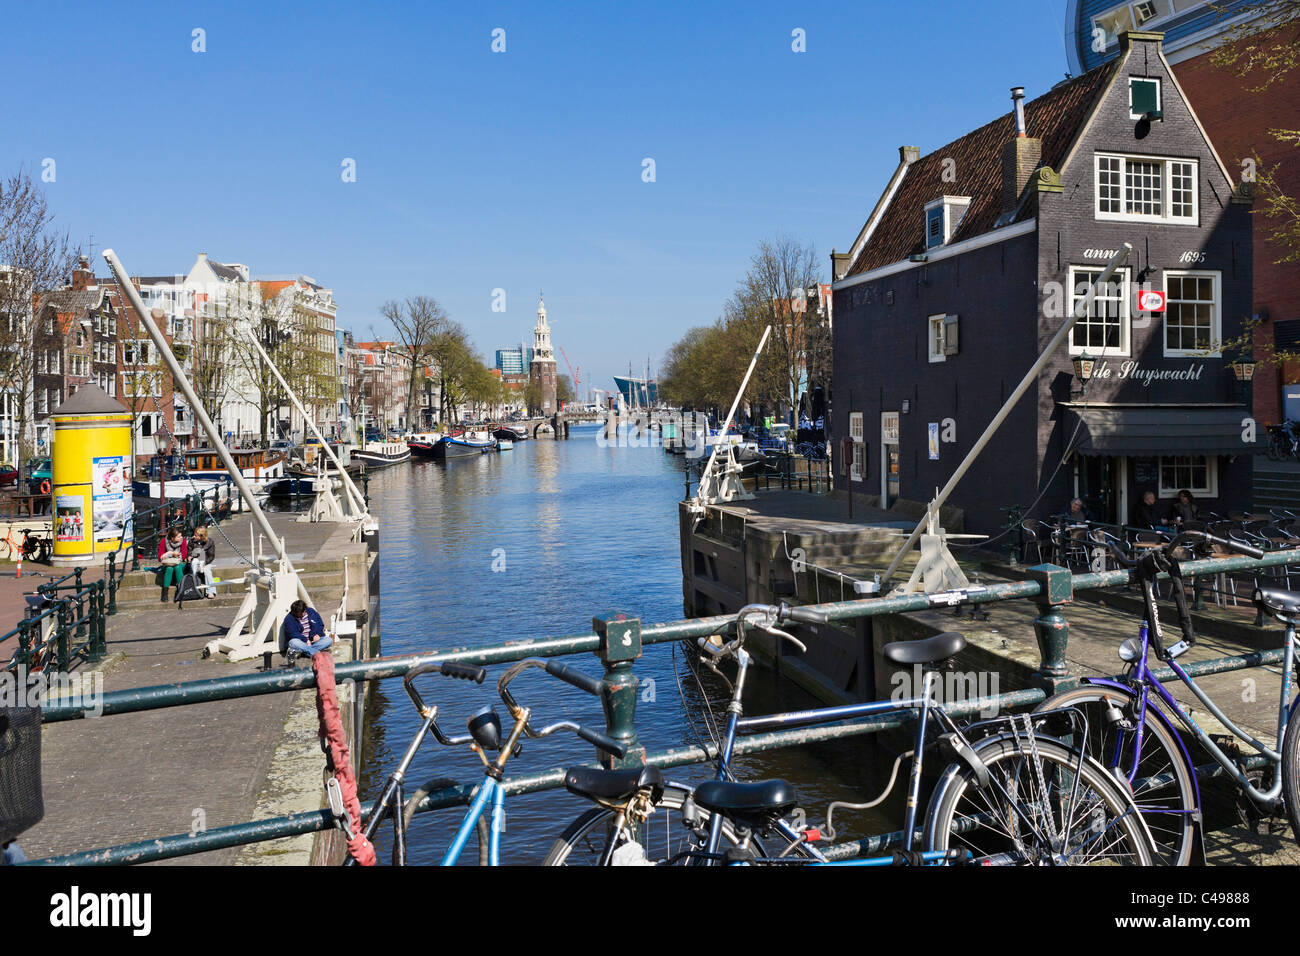 De Sluyswacht waterfront cafe on Jodenbreestraat in the city centre, Amsterdam, Netherlands - Stock Image